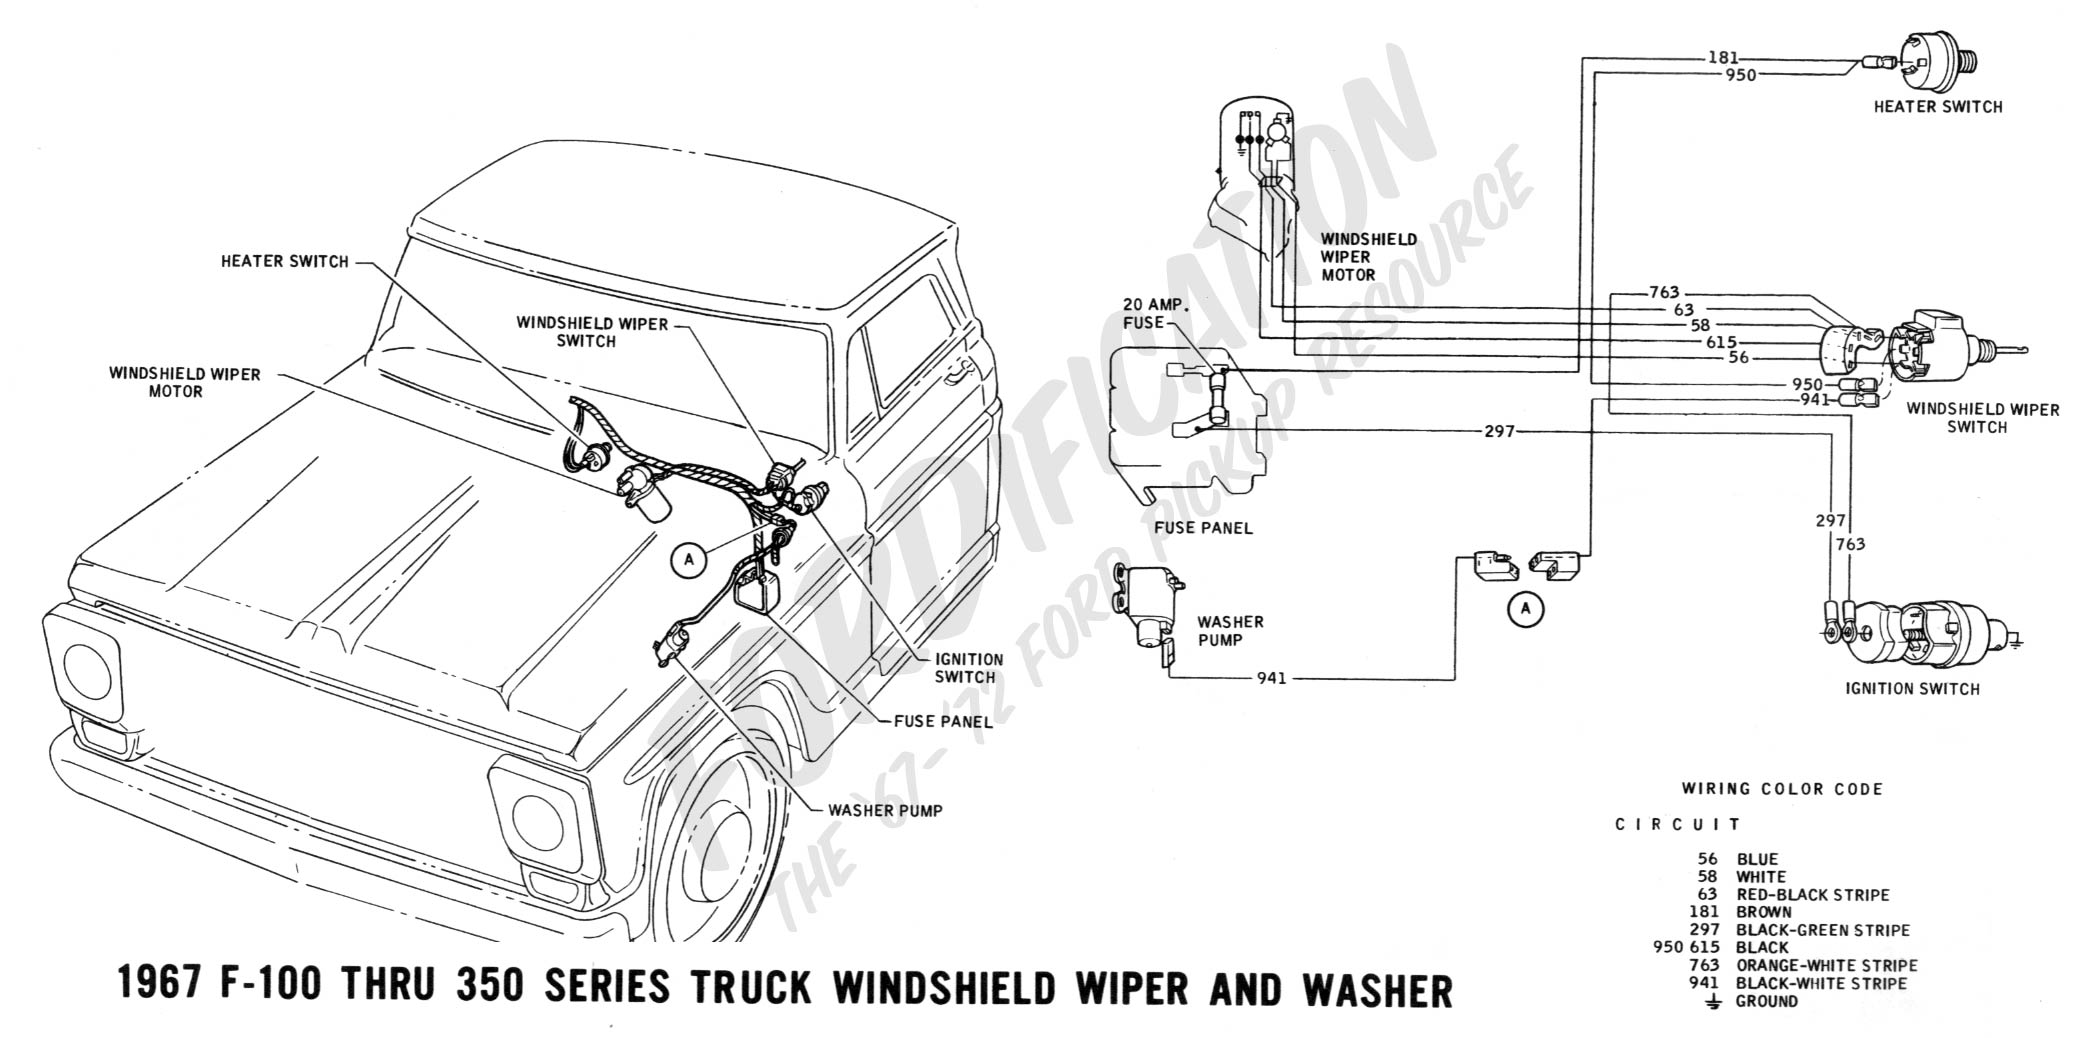 1968 Ford F100 Wiper Switch Wiring Diagram Diy Enthusiasts 1969 Truck Technical Drawings And Schematics Section H Rh Fordification Com F 250 1976 Ignition